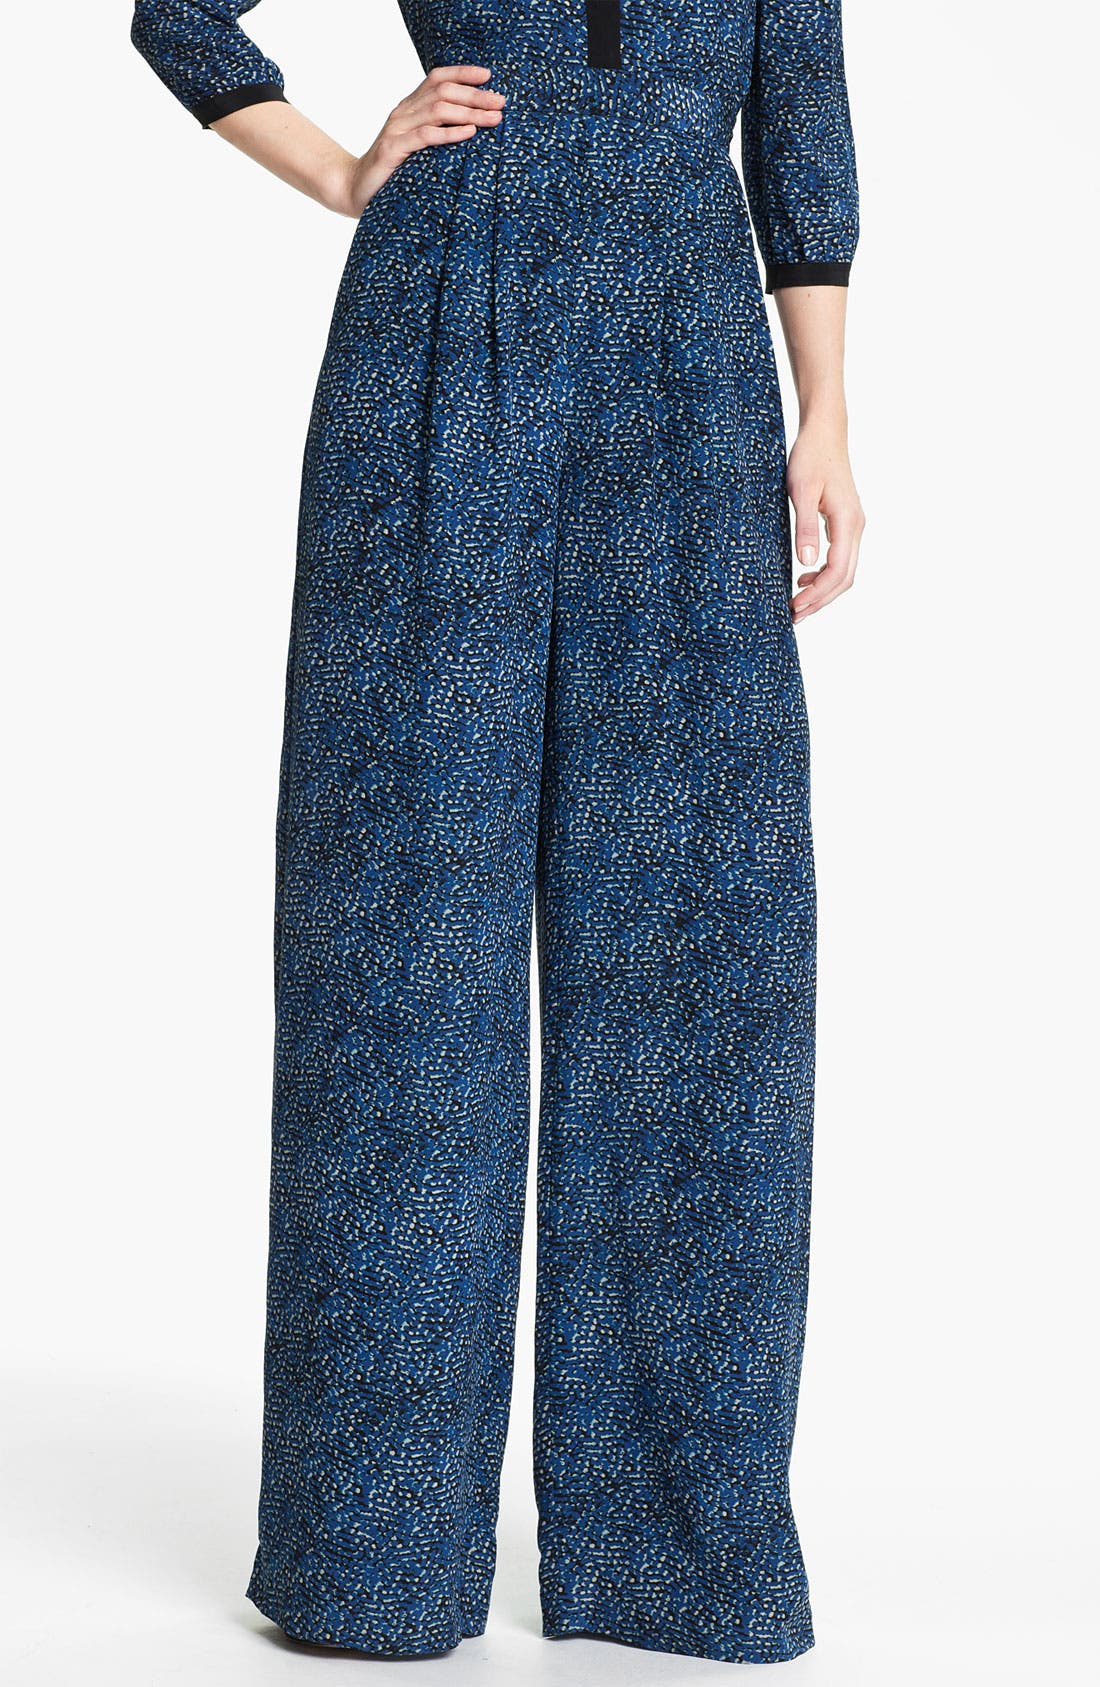 Main Image - Rachel Zoe 'Tori' Abstract Dot Print Silk Pants